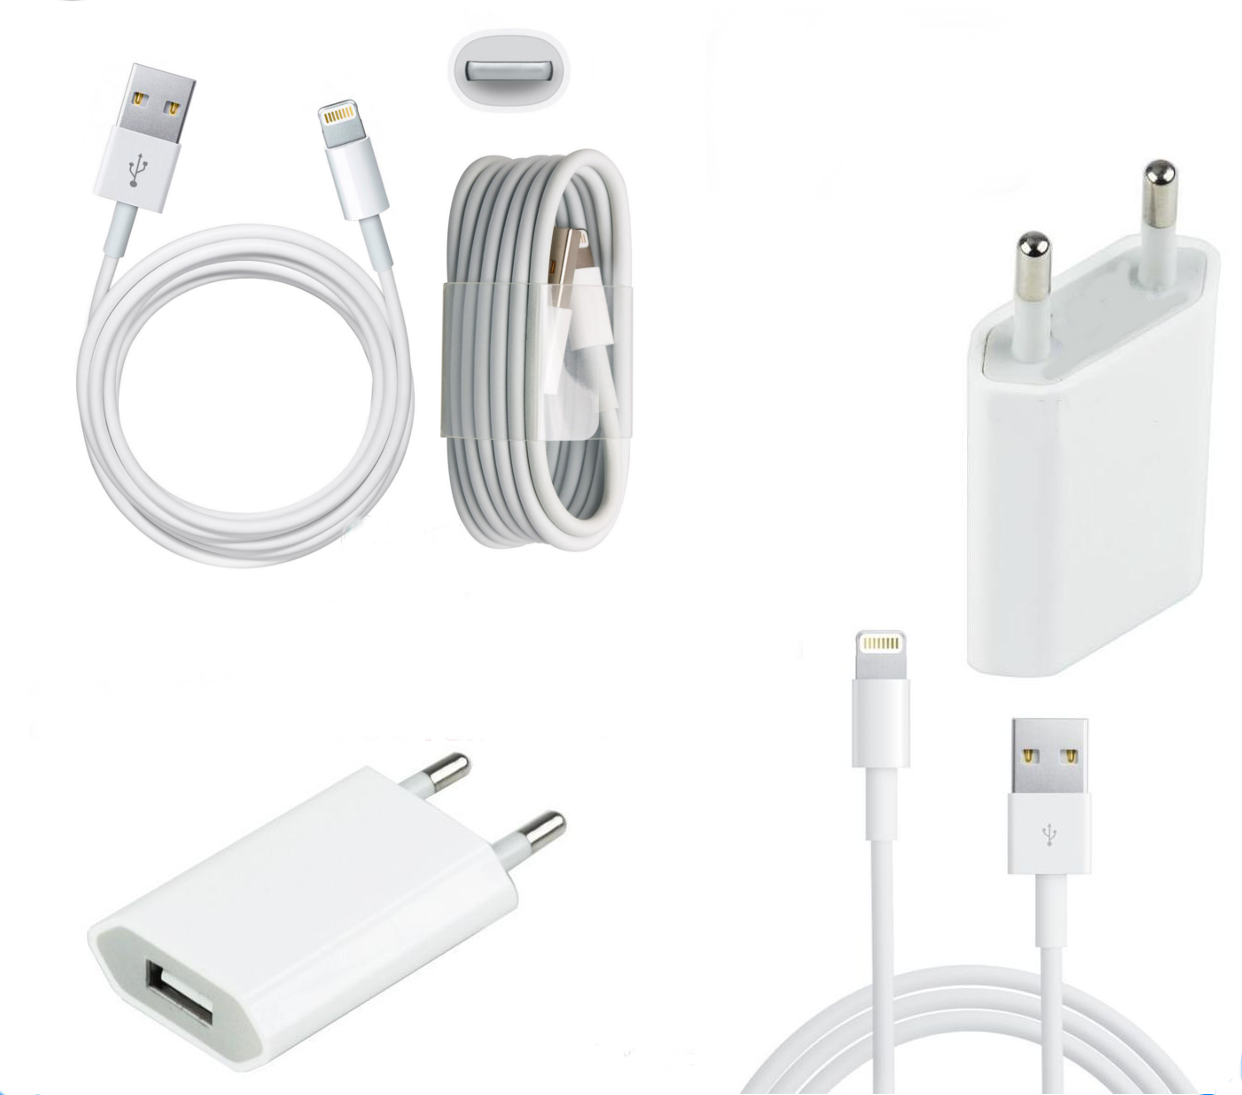 chargeur secteur cable usb pour iphone 5 5s se ebay. Black Bedroom Furniture Sets. Home Design Ideas